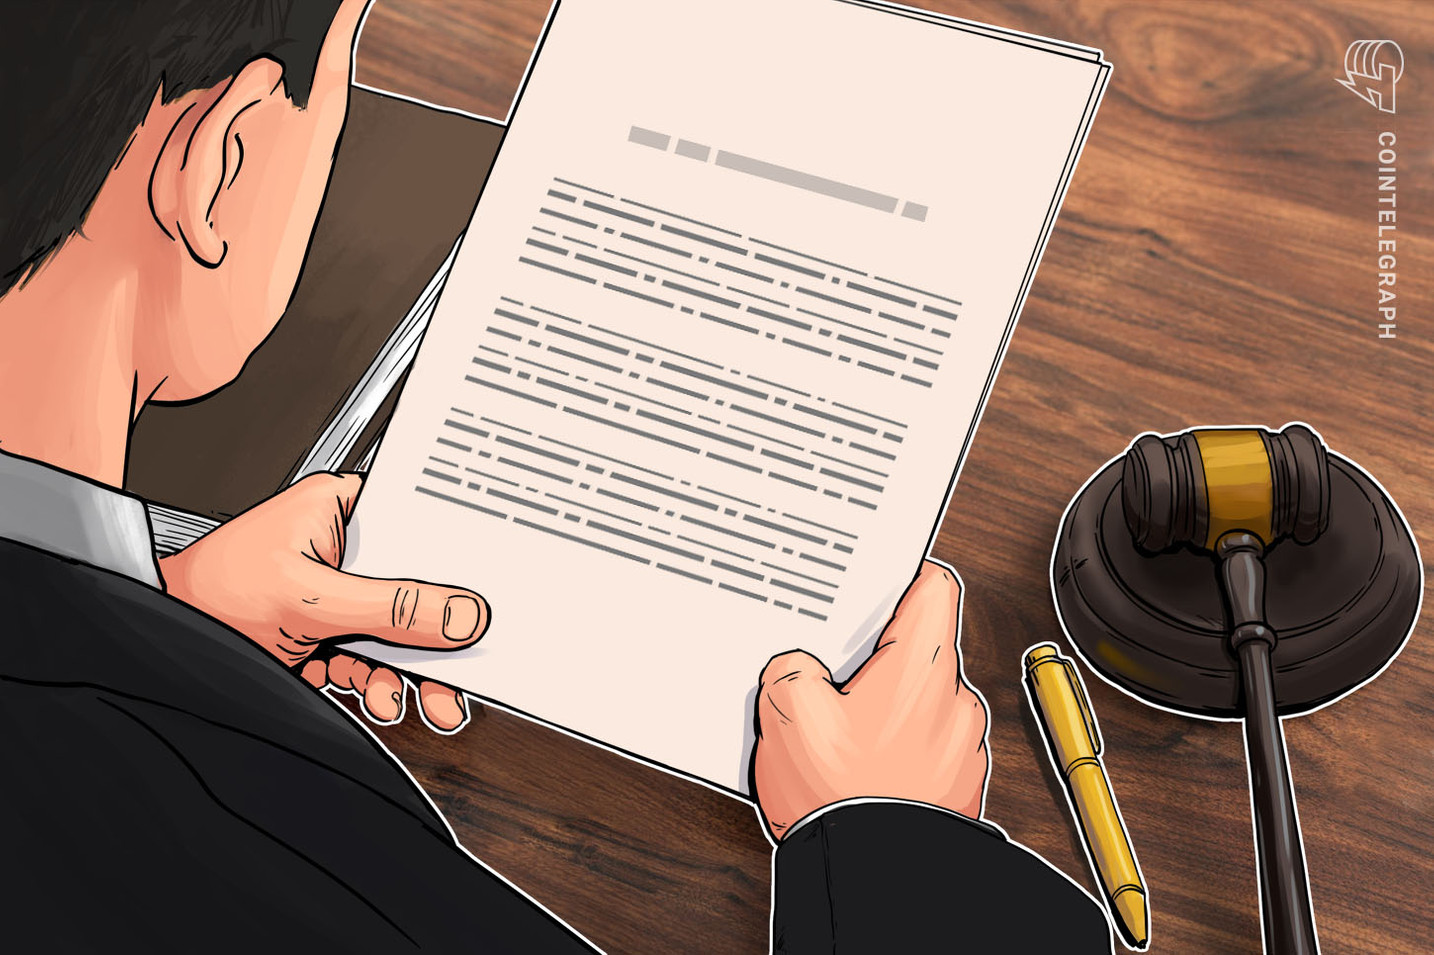 Santander Loses Appeal Against Brazilian Crypto Exchange, Fine Upheld